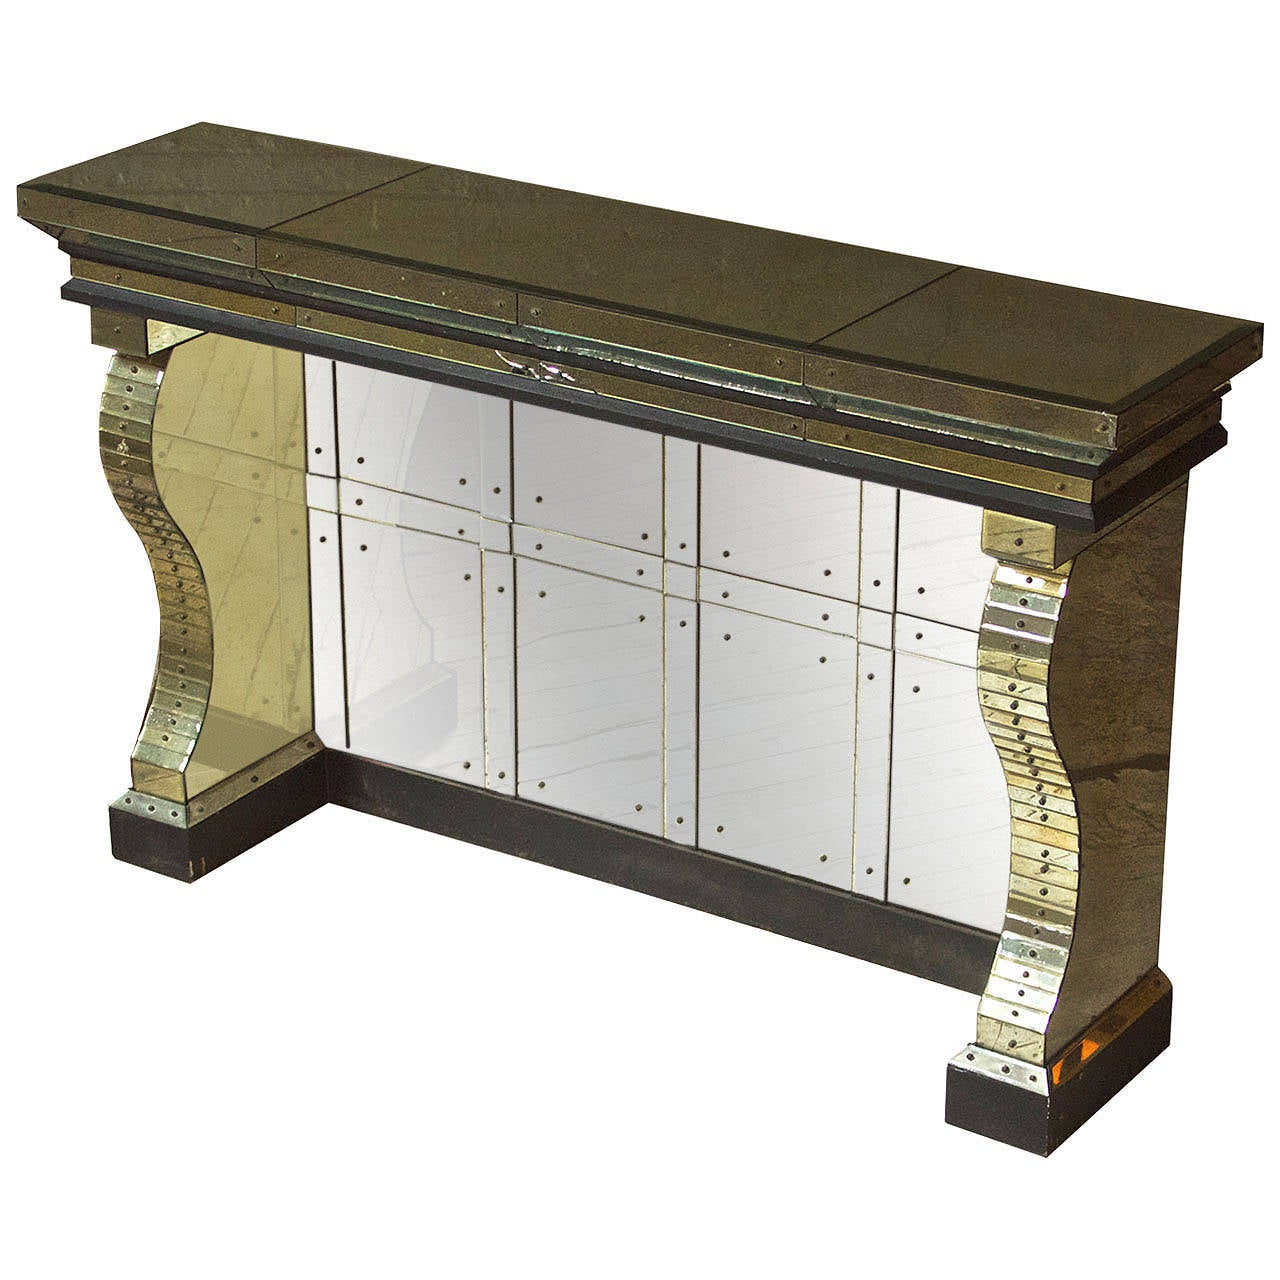 Mirrored Console in the manner of Serge Roche